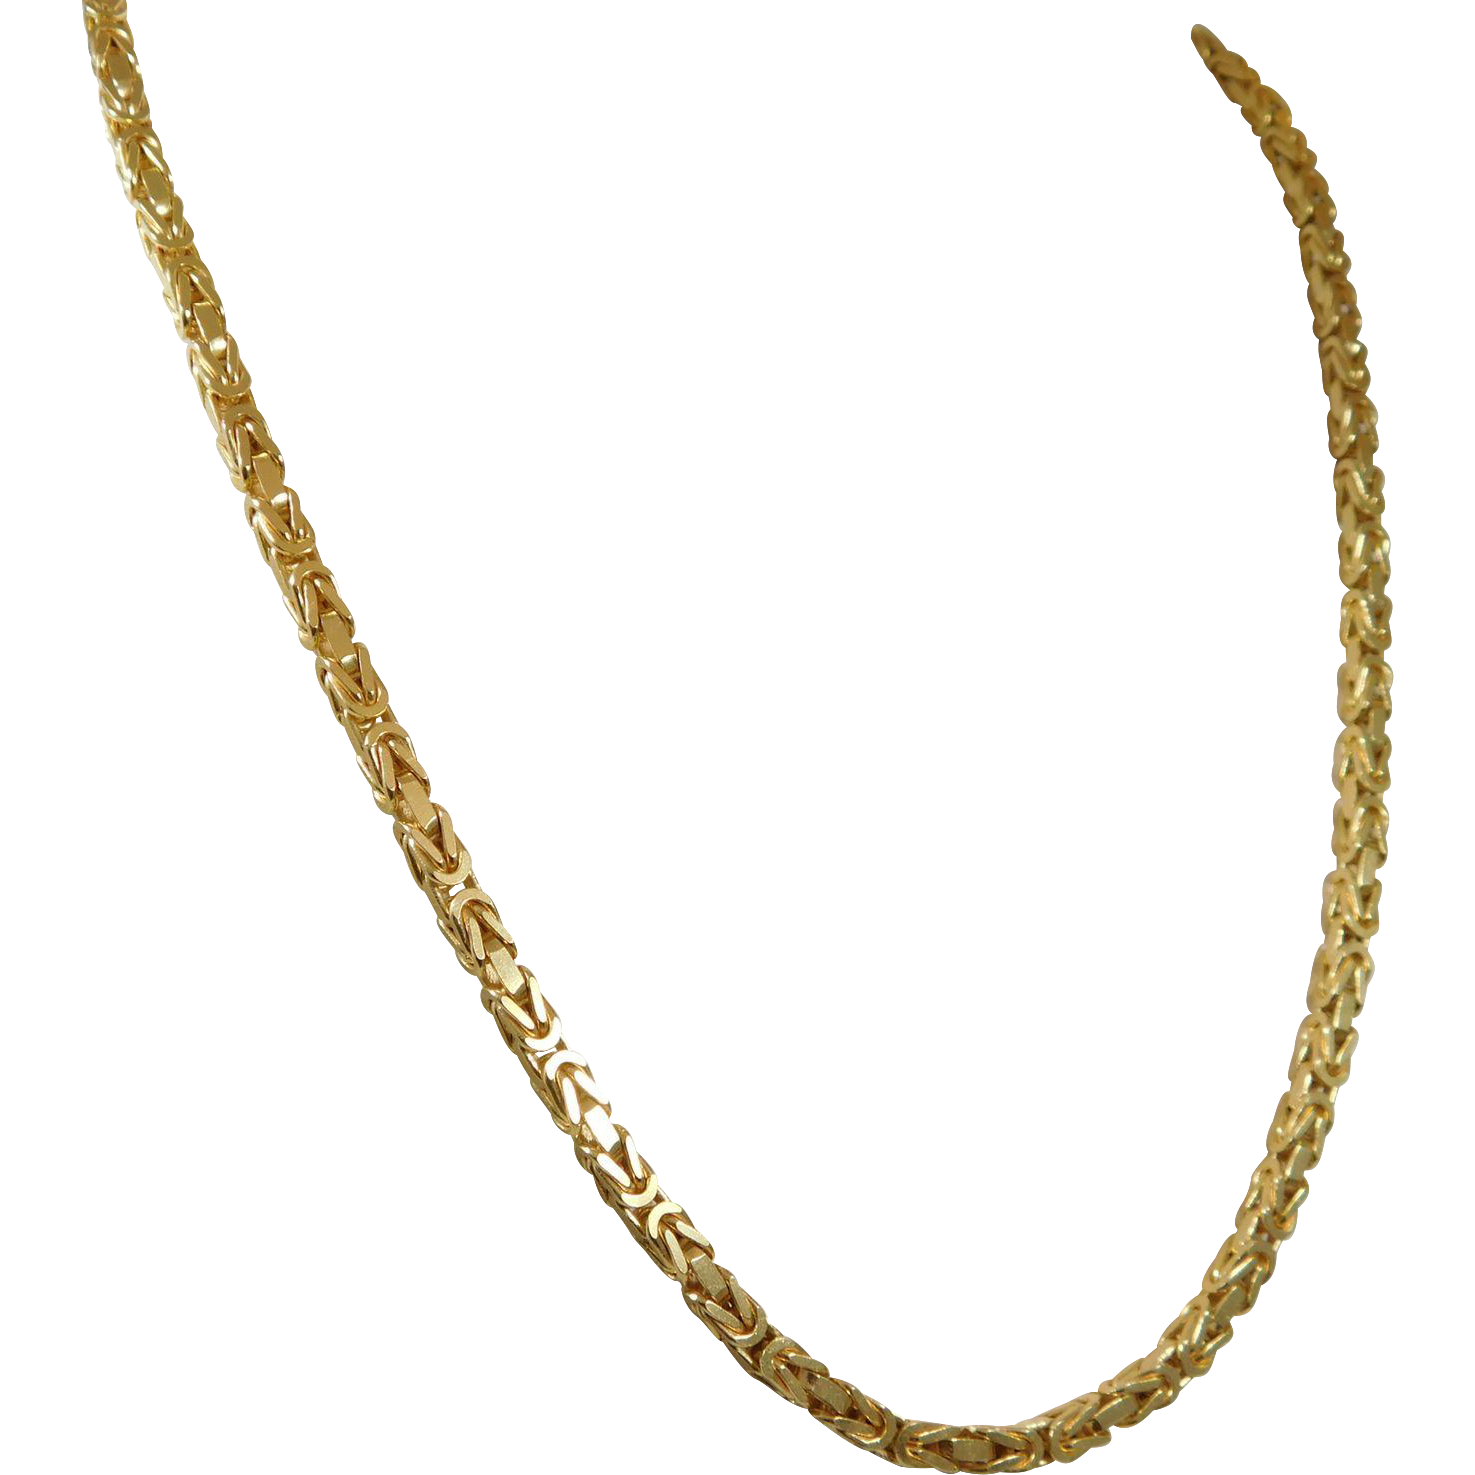 byzantine inch gold pin karat yellow chain chains mm